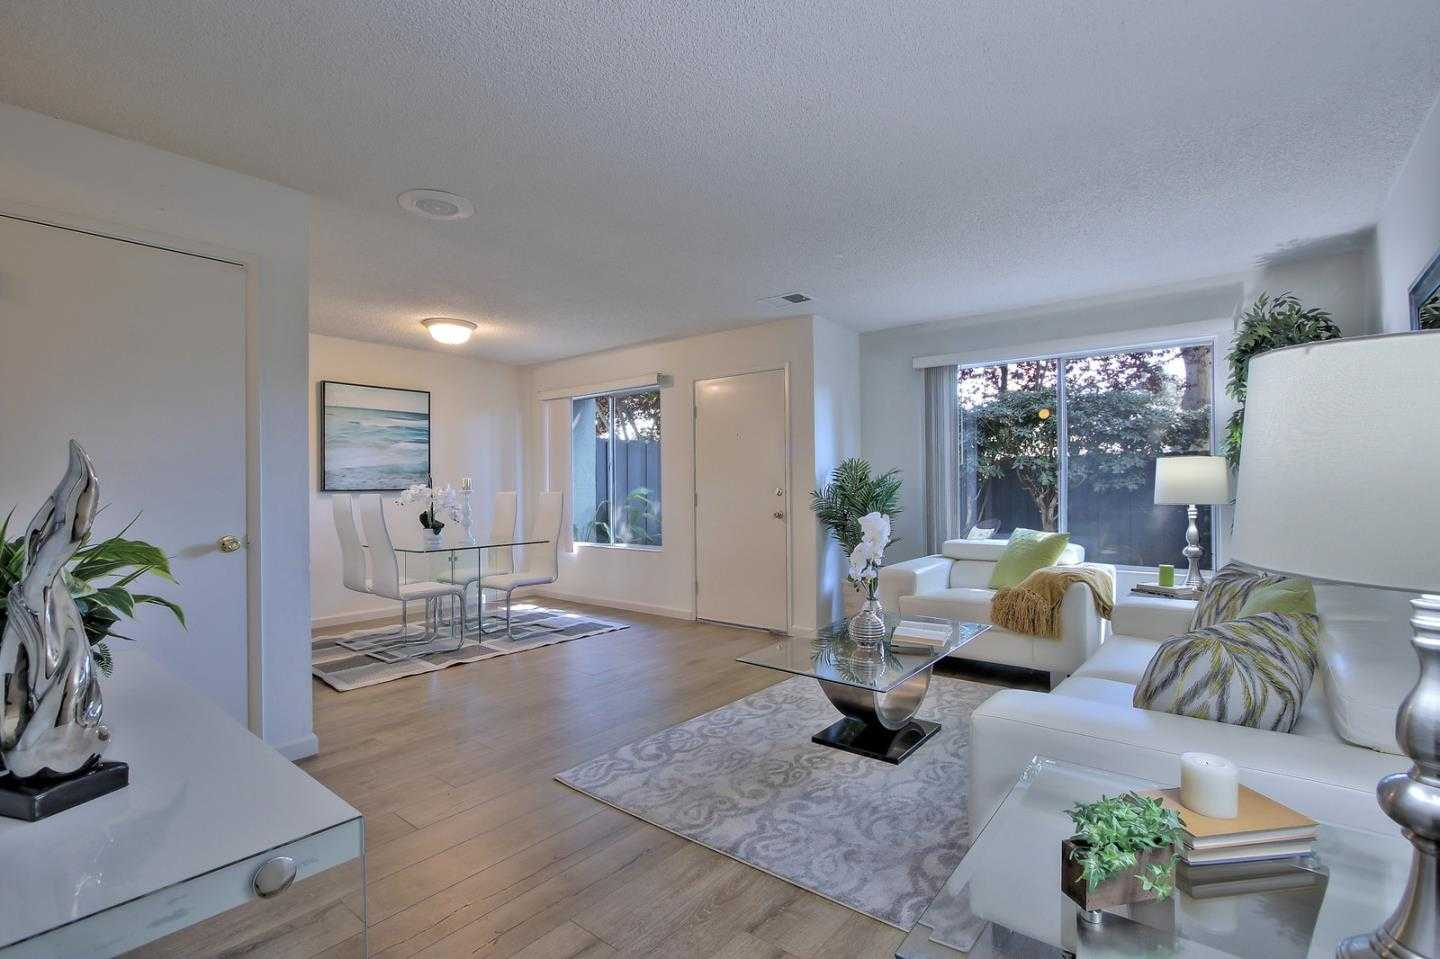 $1,030,000 - 4Br/3Ba -  for Sale in San Jose